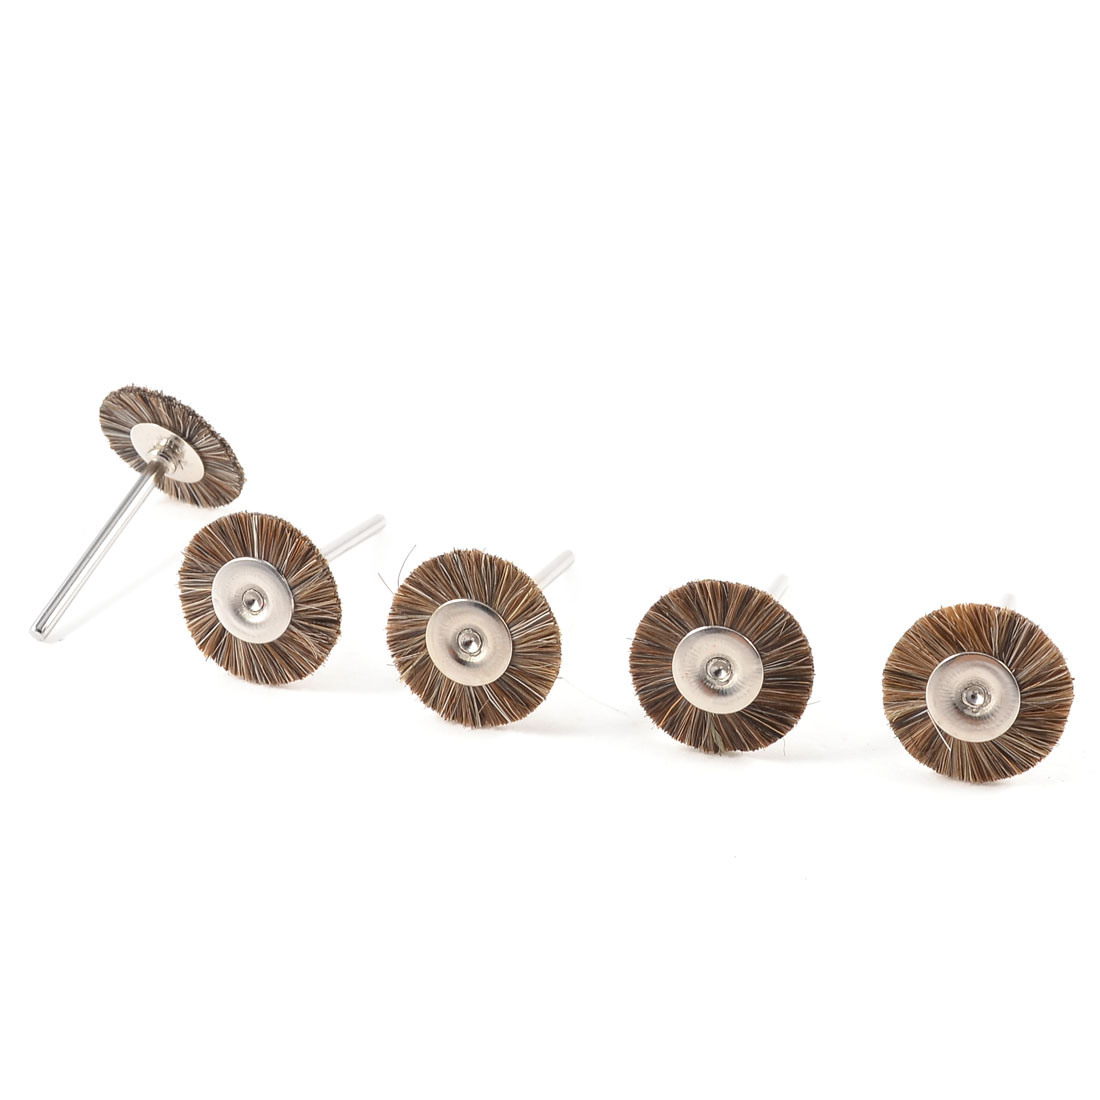 5 Pcs Silver Tone Shank Brown Fibre Grinding Polishing Brush Wheel